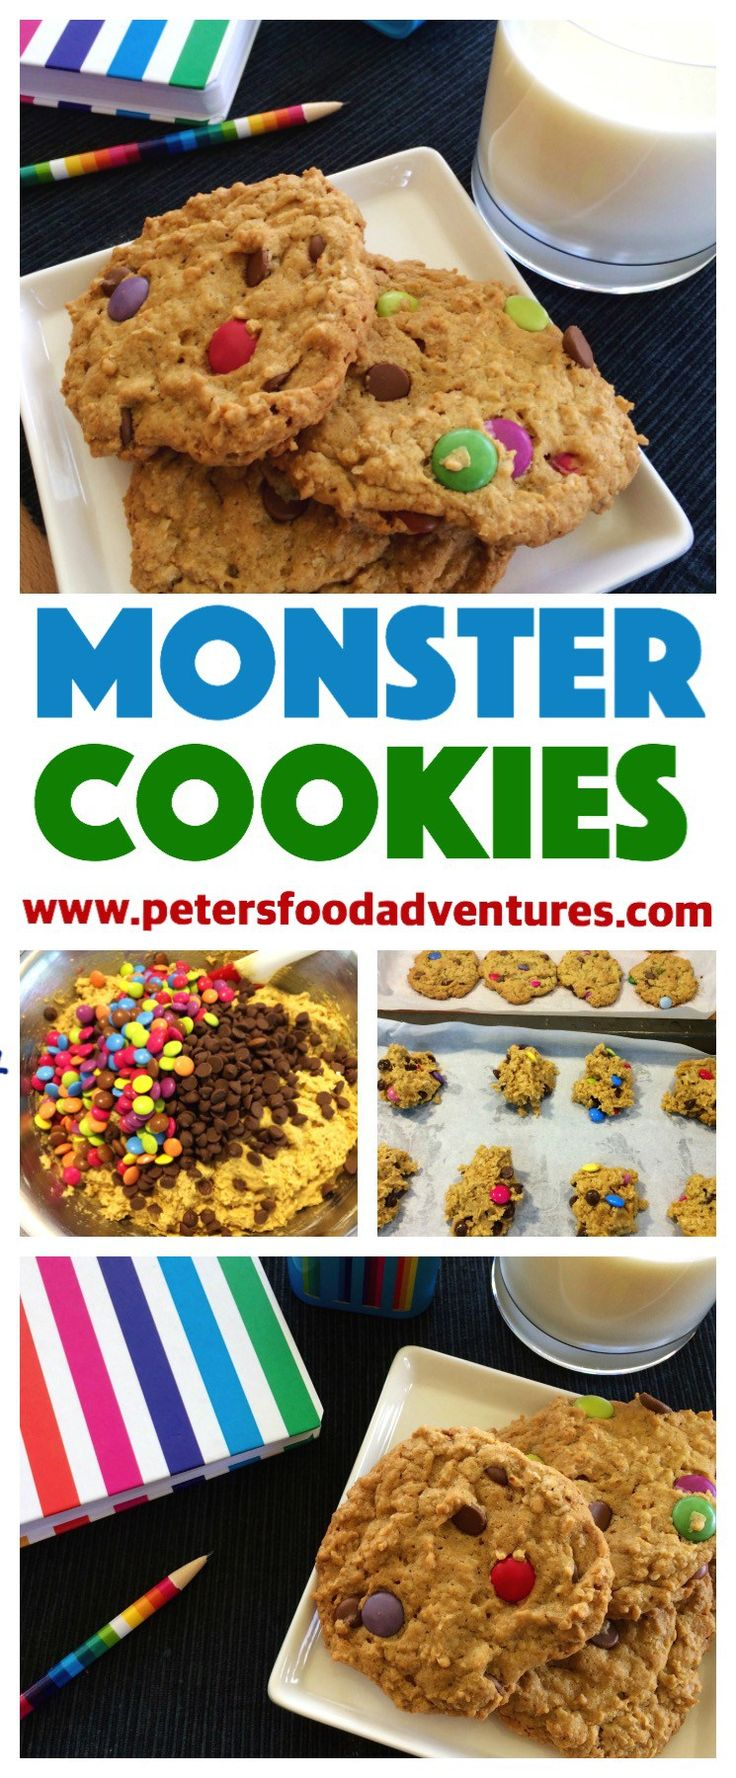 Everything You Want in a Cookie! Oats, Smarties, Chocolate Chips, Peanut Butter! This Recipe Makes Enough To Feed A Small Army! Monster Cookies Recipe